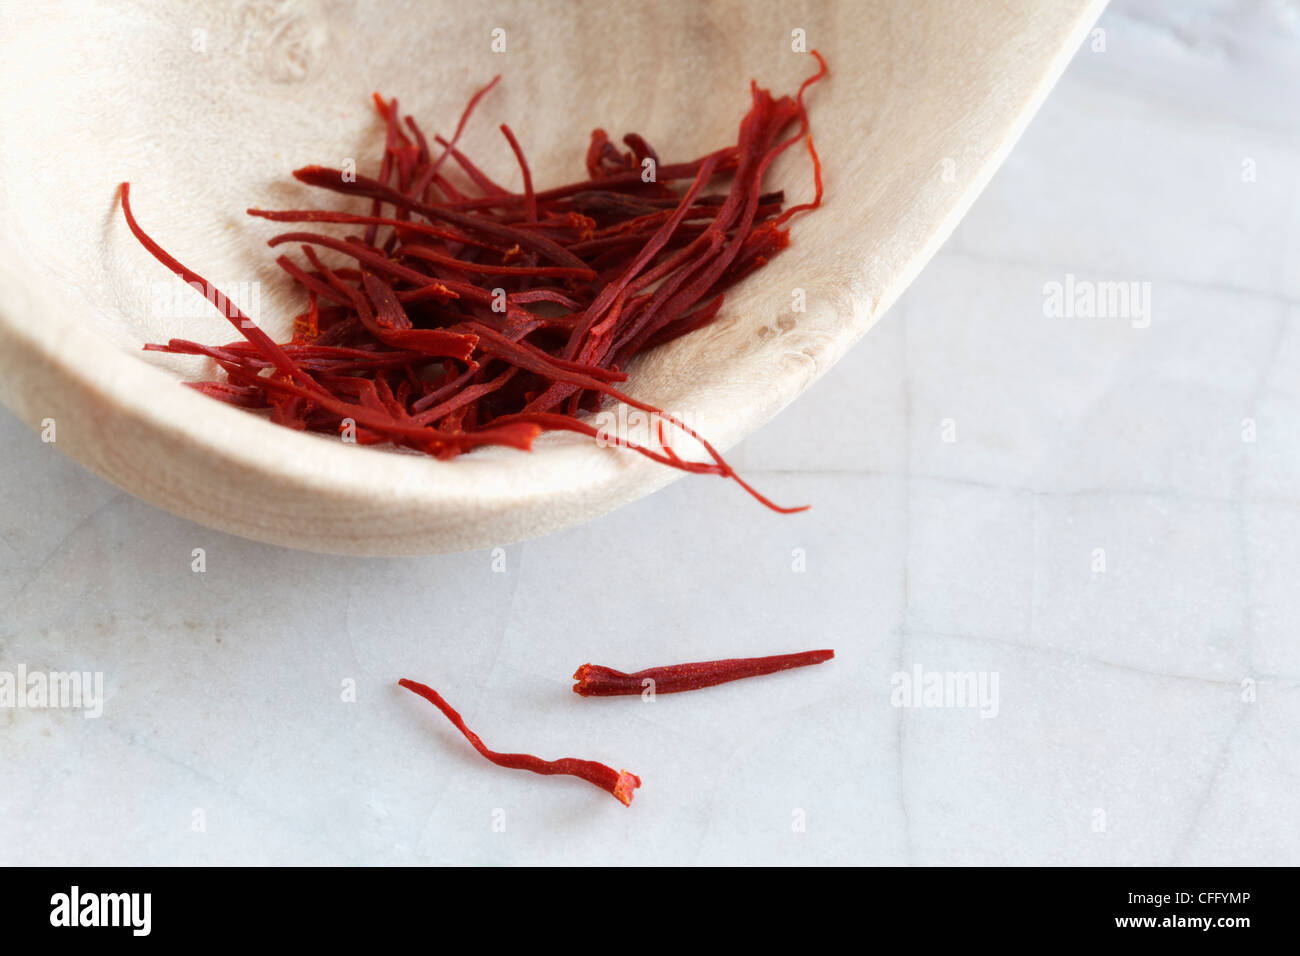 Saffron threads on a wooden spoon with copy space. - Stock Image